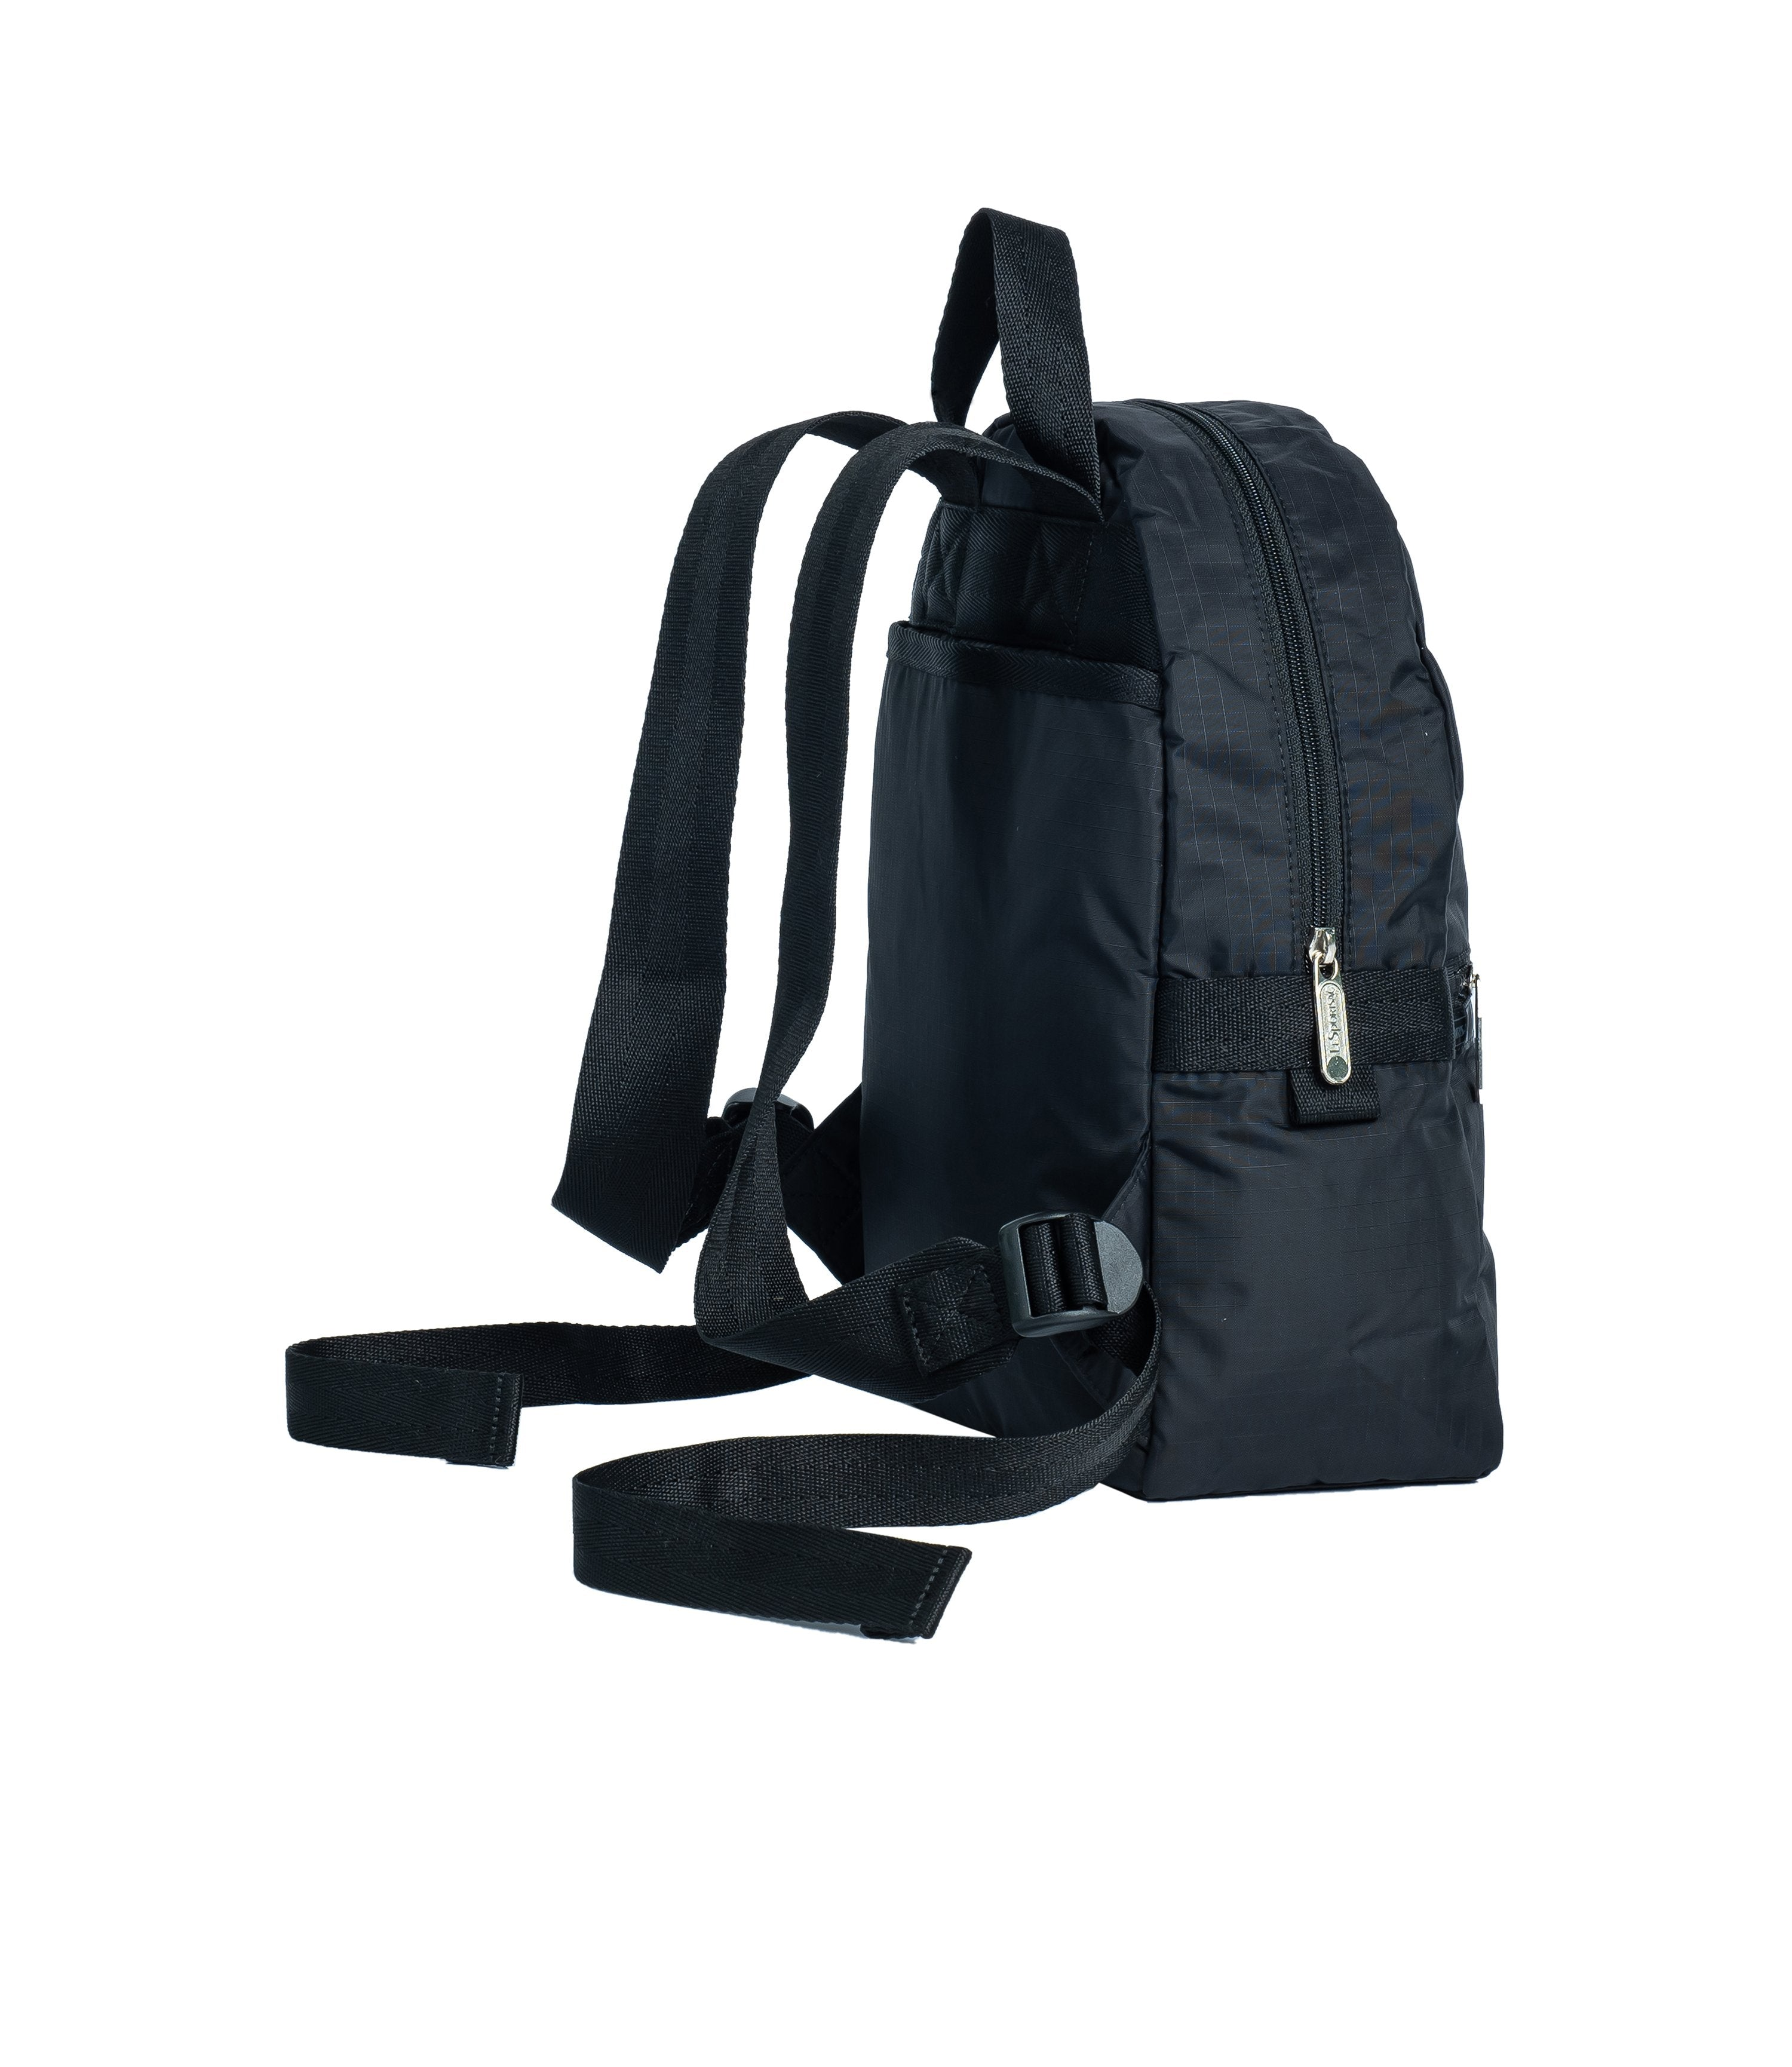 Small Carrier Backpack